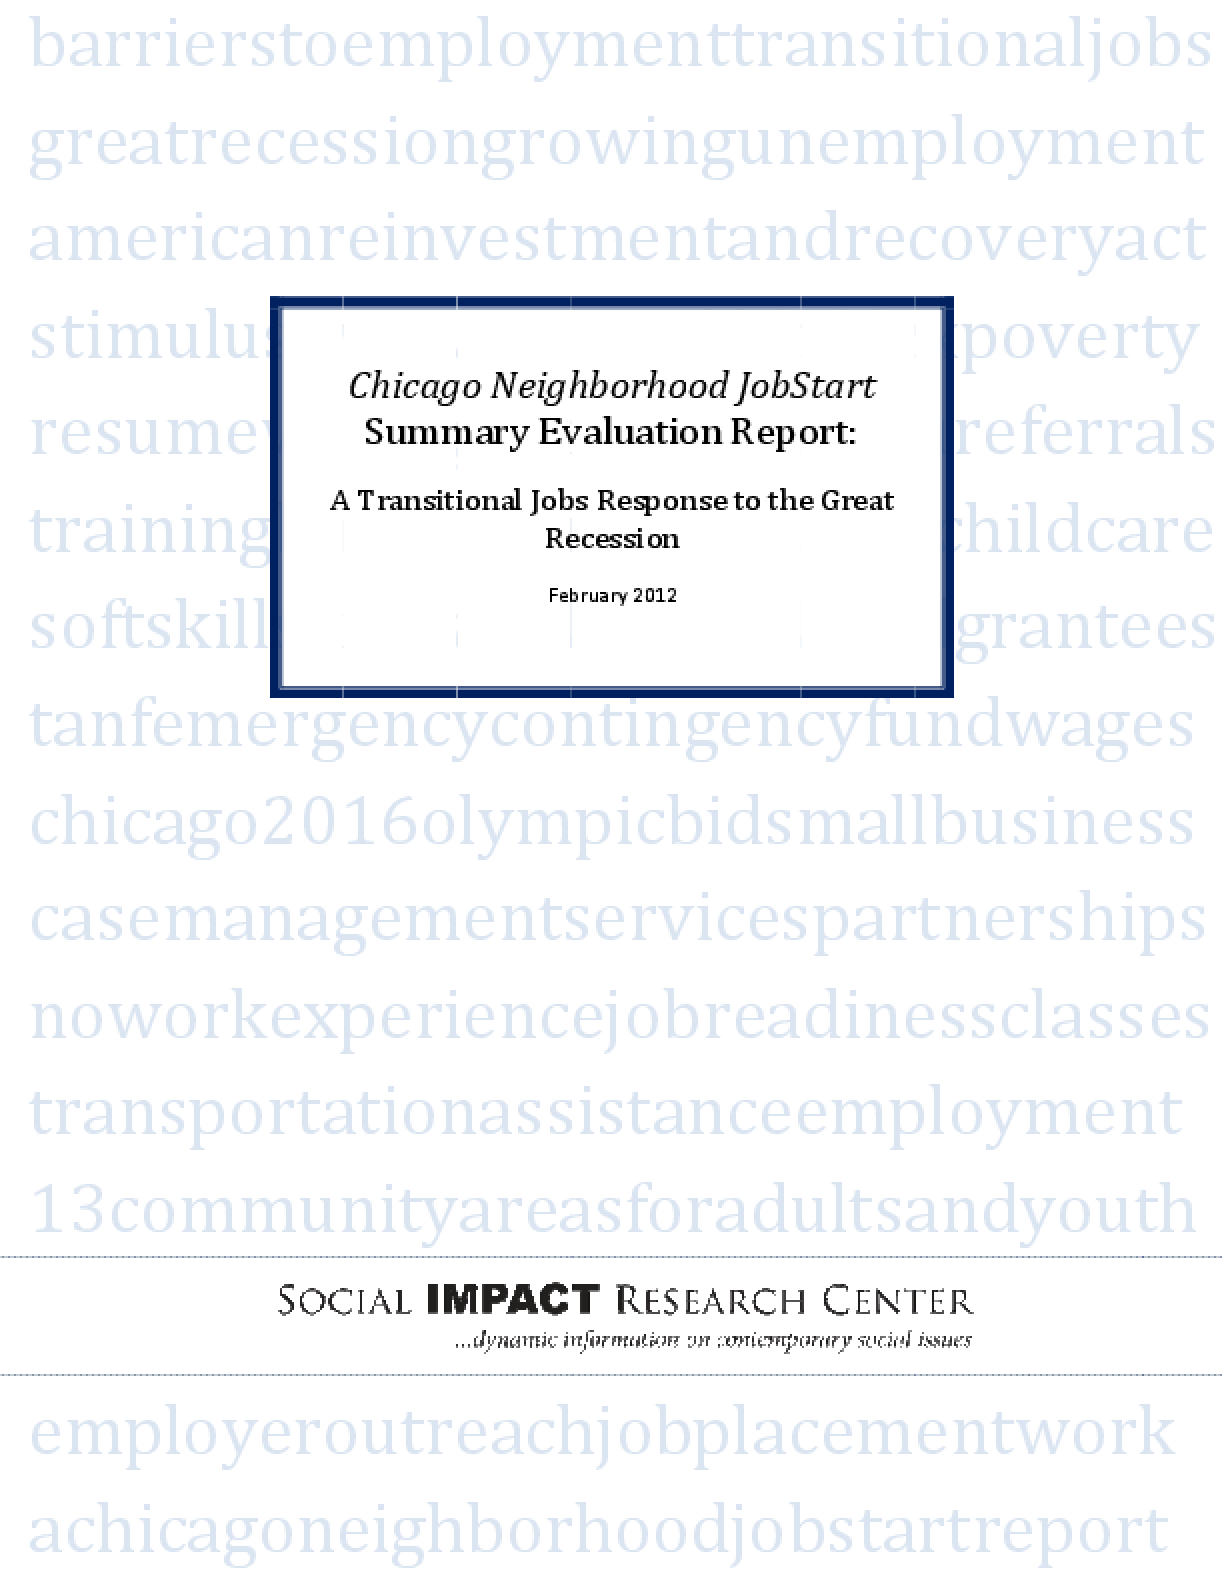 Chicago Neighborhood Job Start: Summary Evaluation Report, A Transitional Jobs Response to the Great Recession